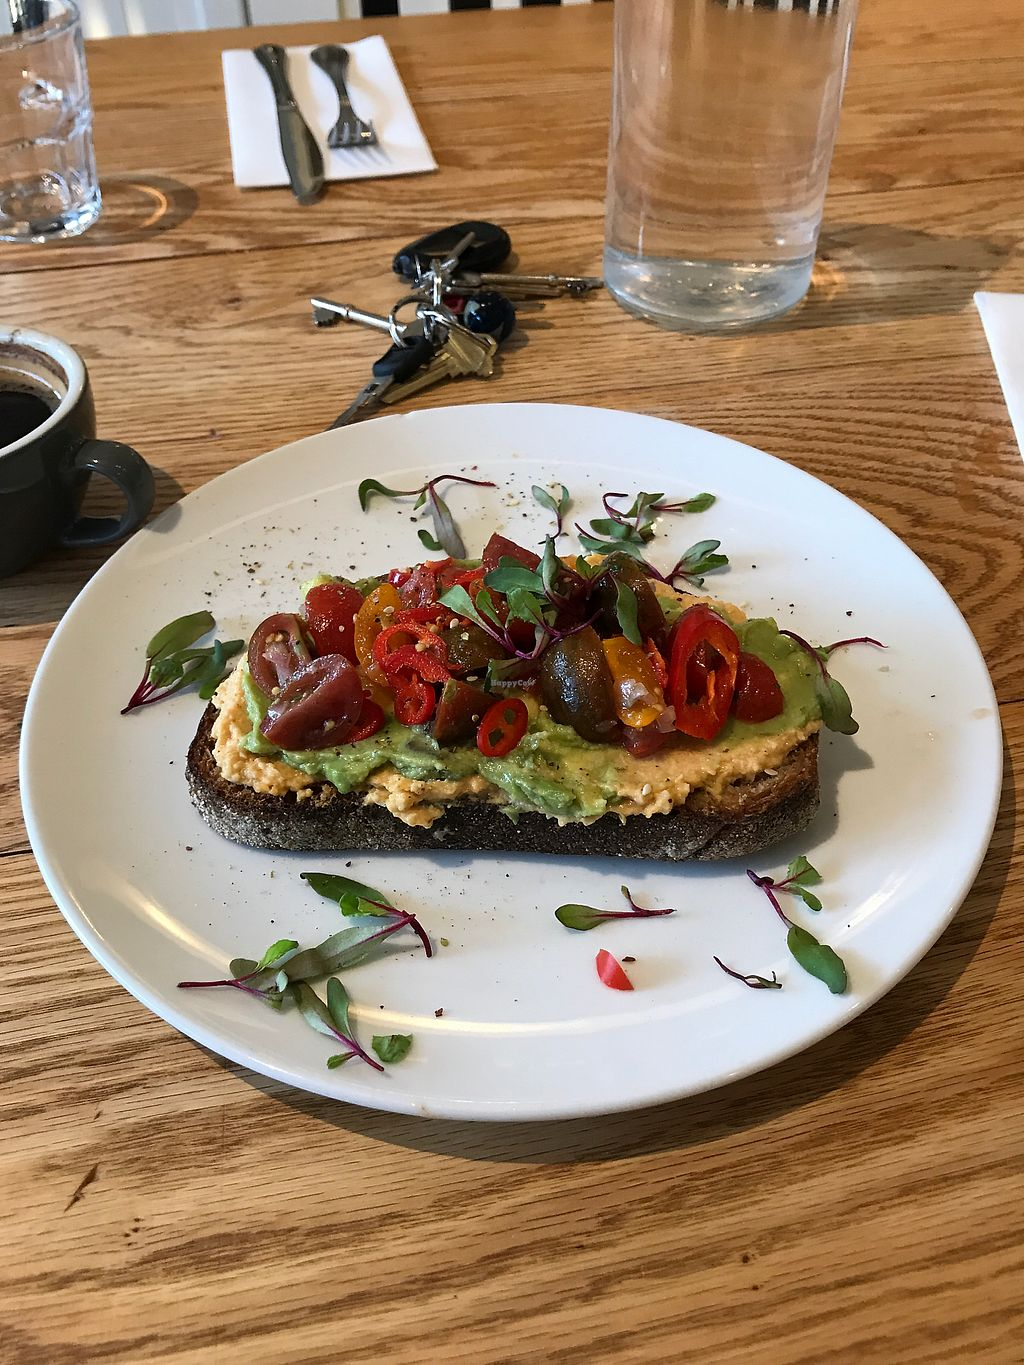 """Photo of Kerr Street Cafe  by <a href=""""/members/profile/Charliepenn"""">Charliepenn</a> <br/>Avocado toast <br/> November 12, 2017  - <a href='/contact/abuse/image/104925/324938'>Report</a>"""